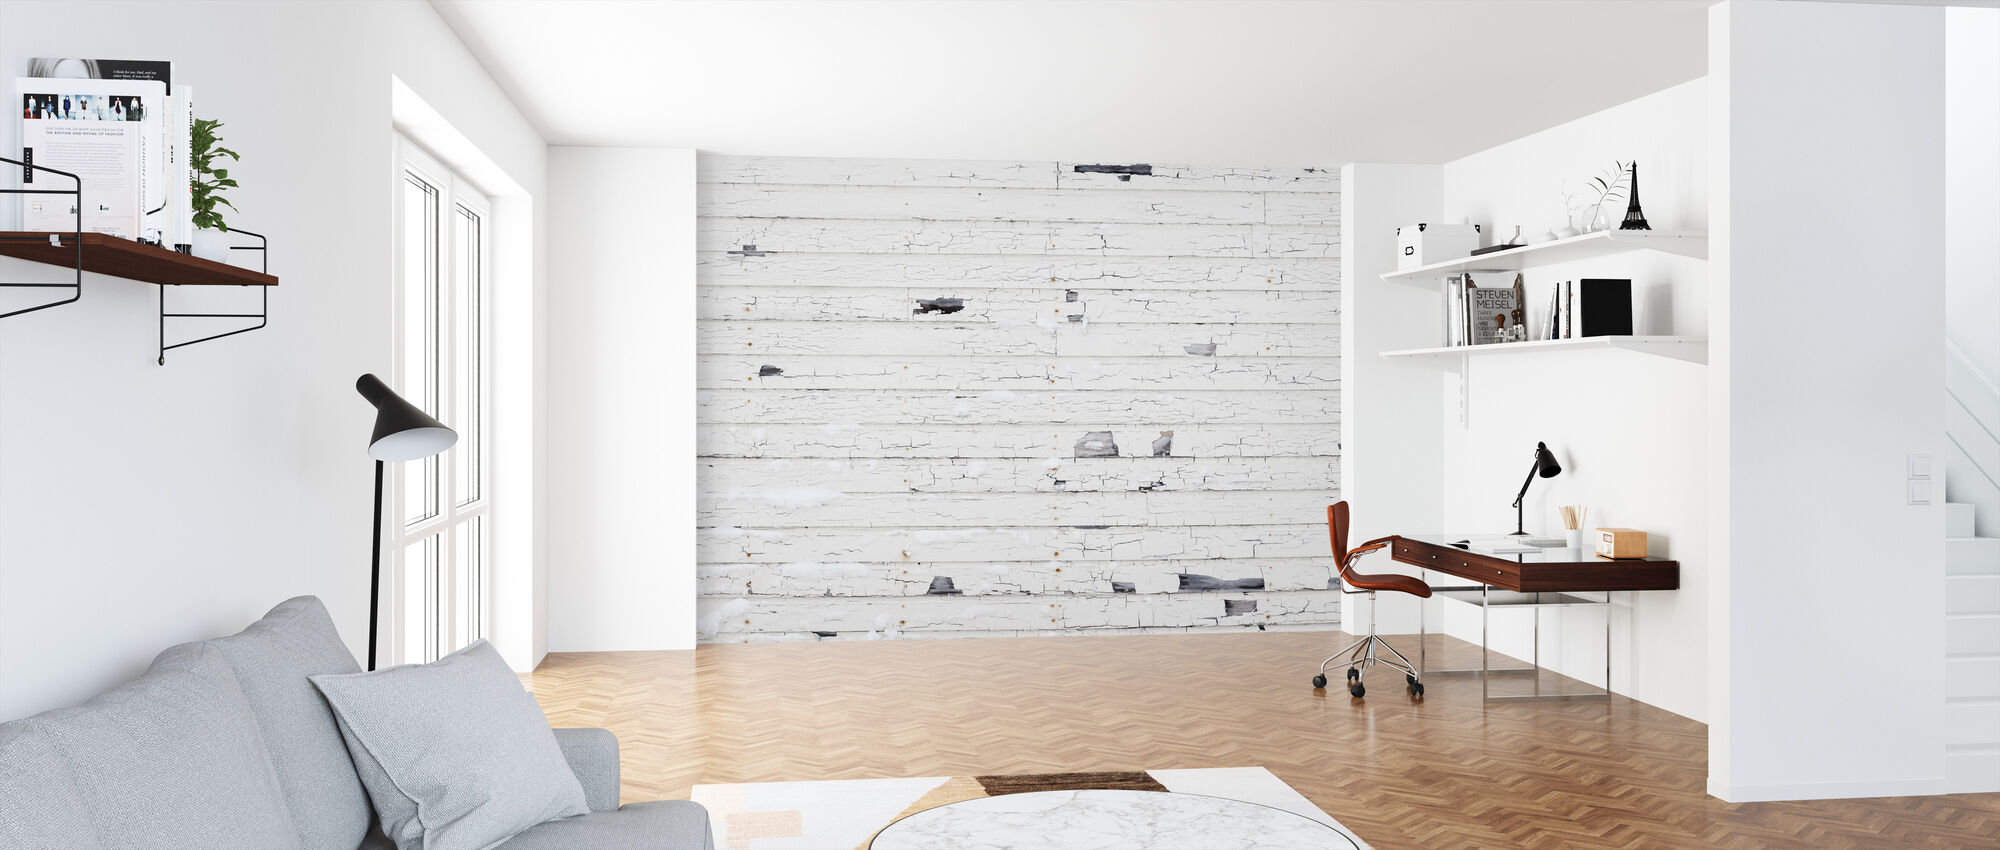 White Woodenwall with Snow - Wallpaper - Office